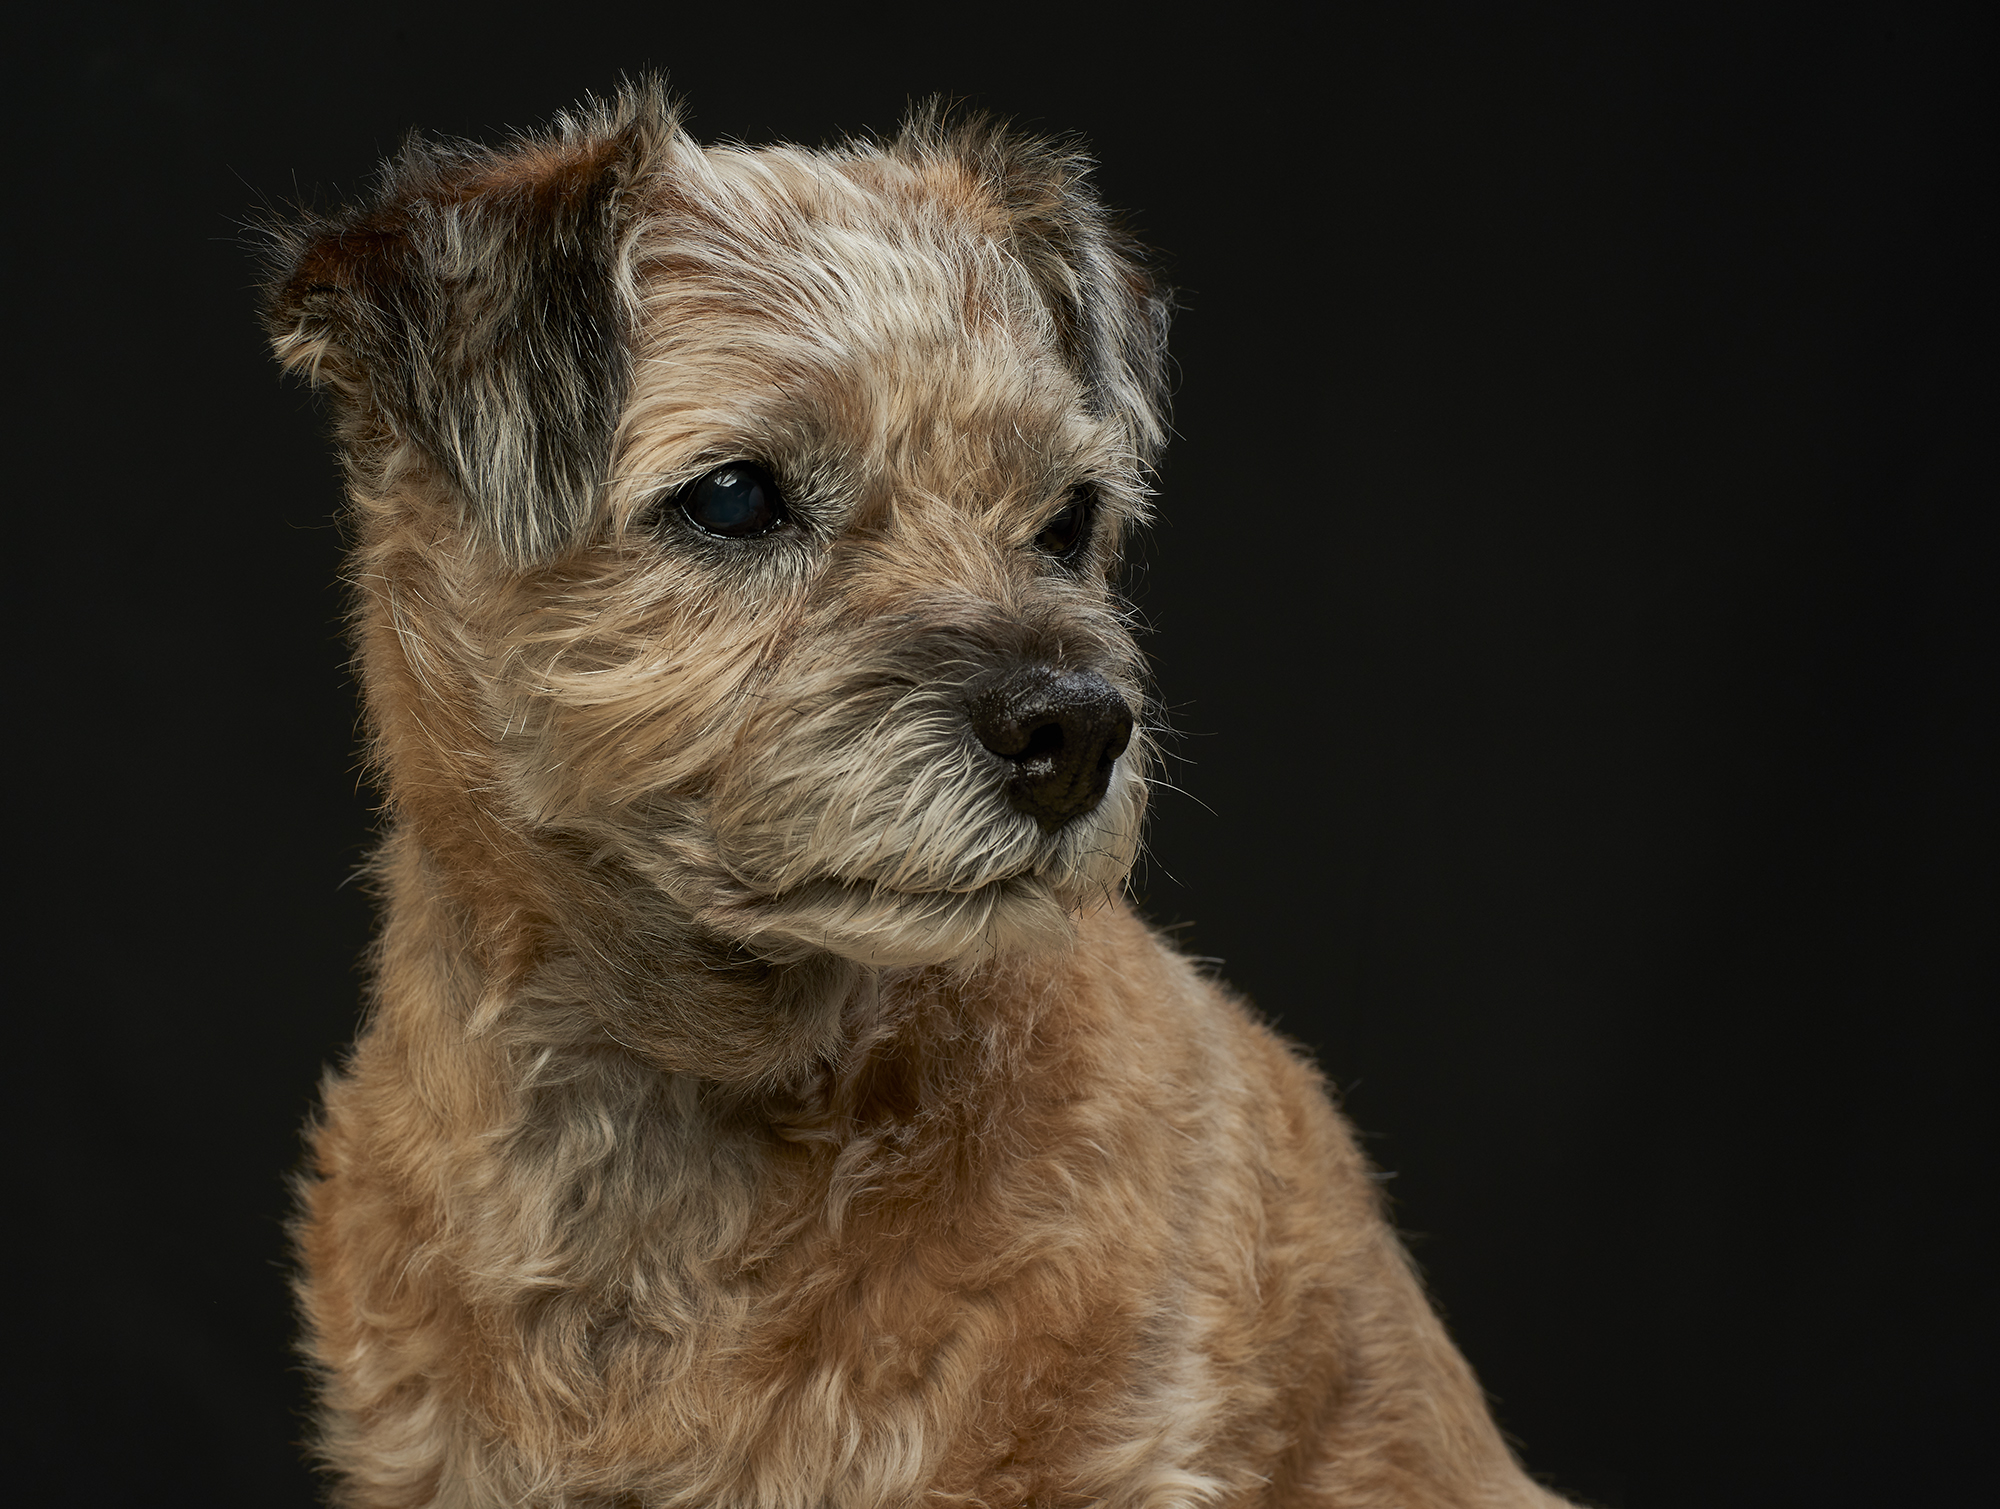 London & Essex Professional Photography Group 2019 Print Competition: Merit - Pet Portrait